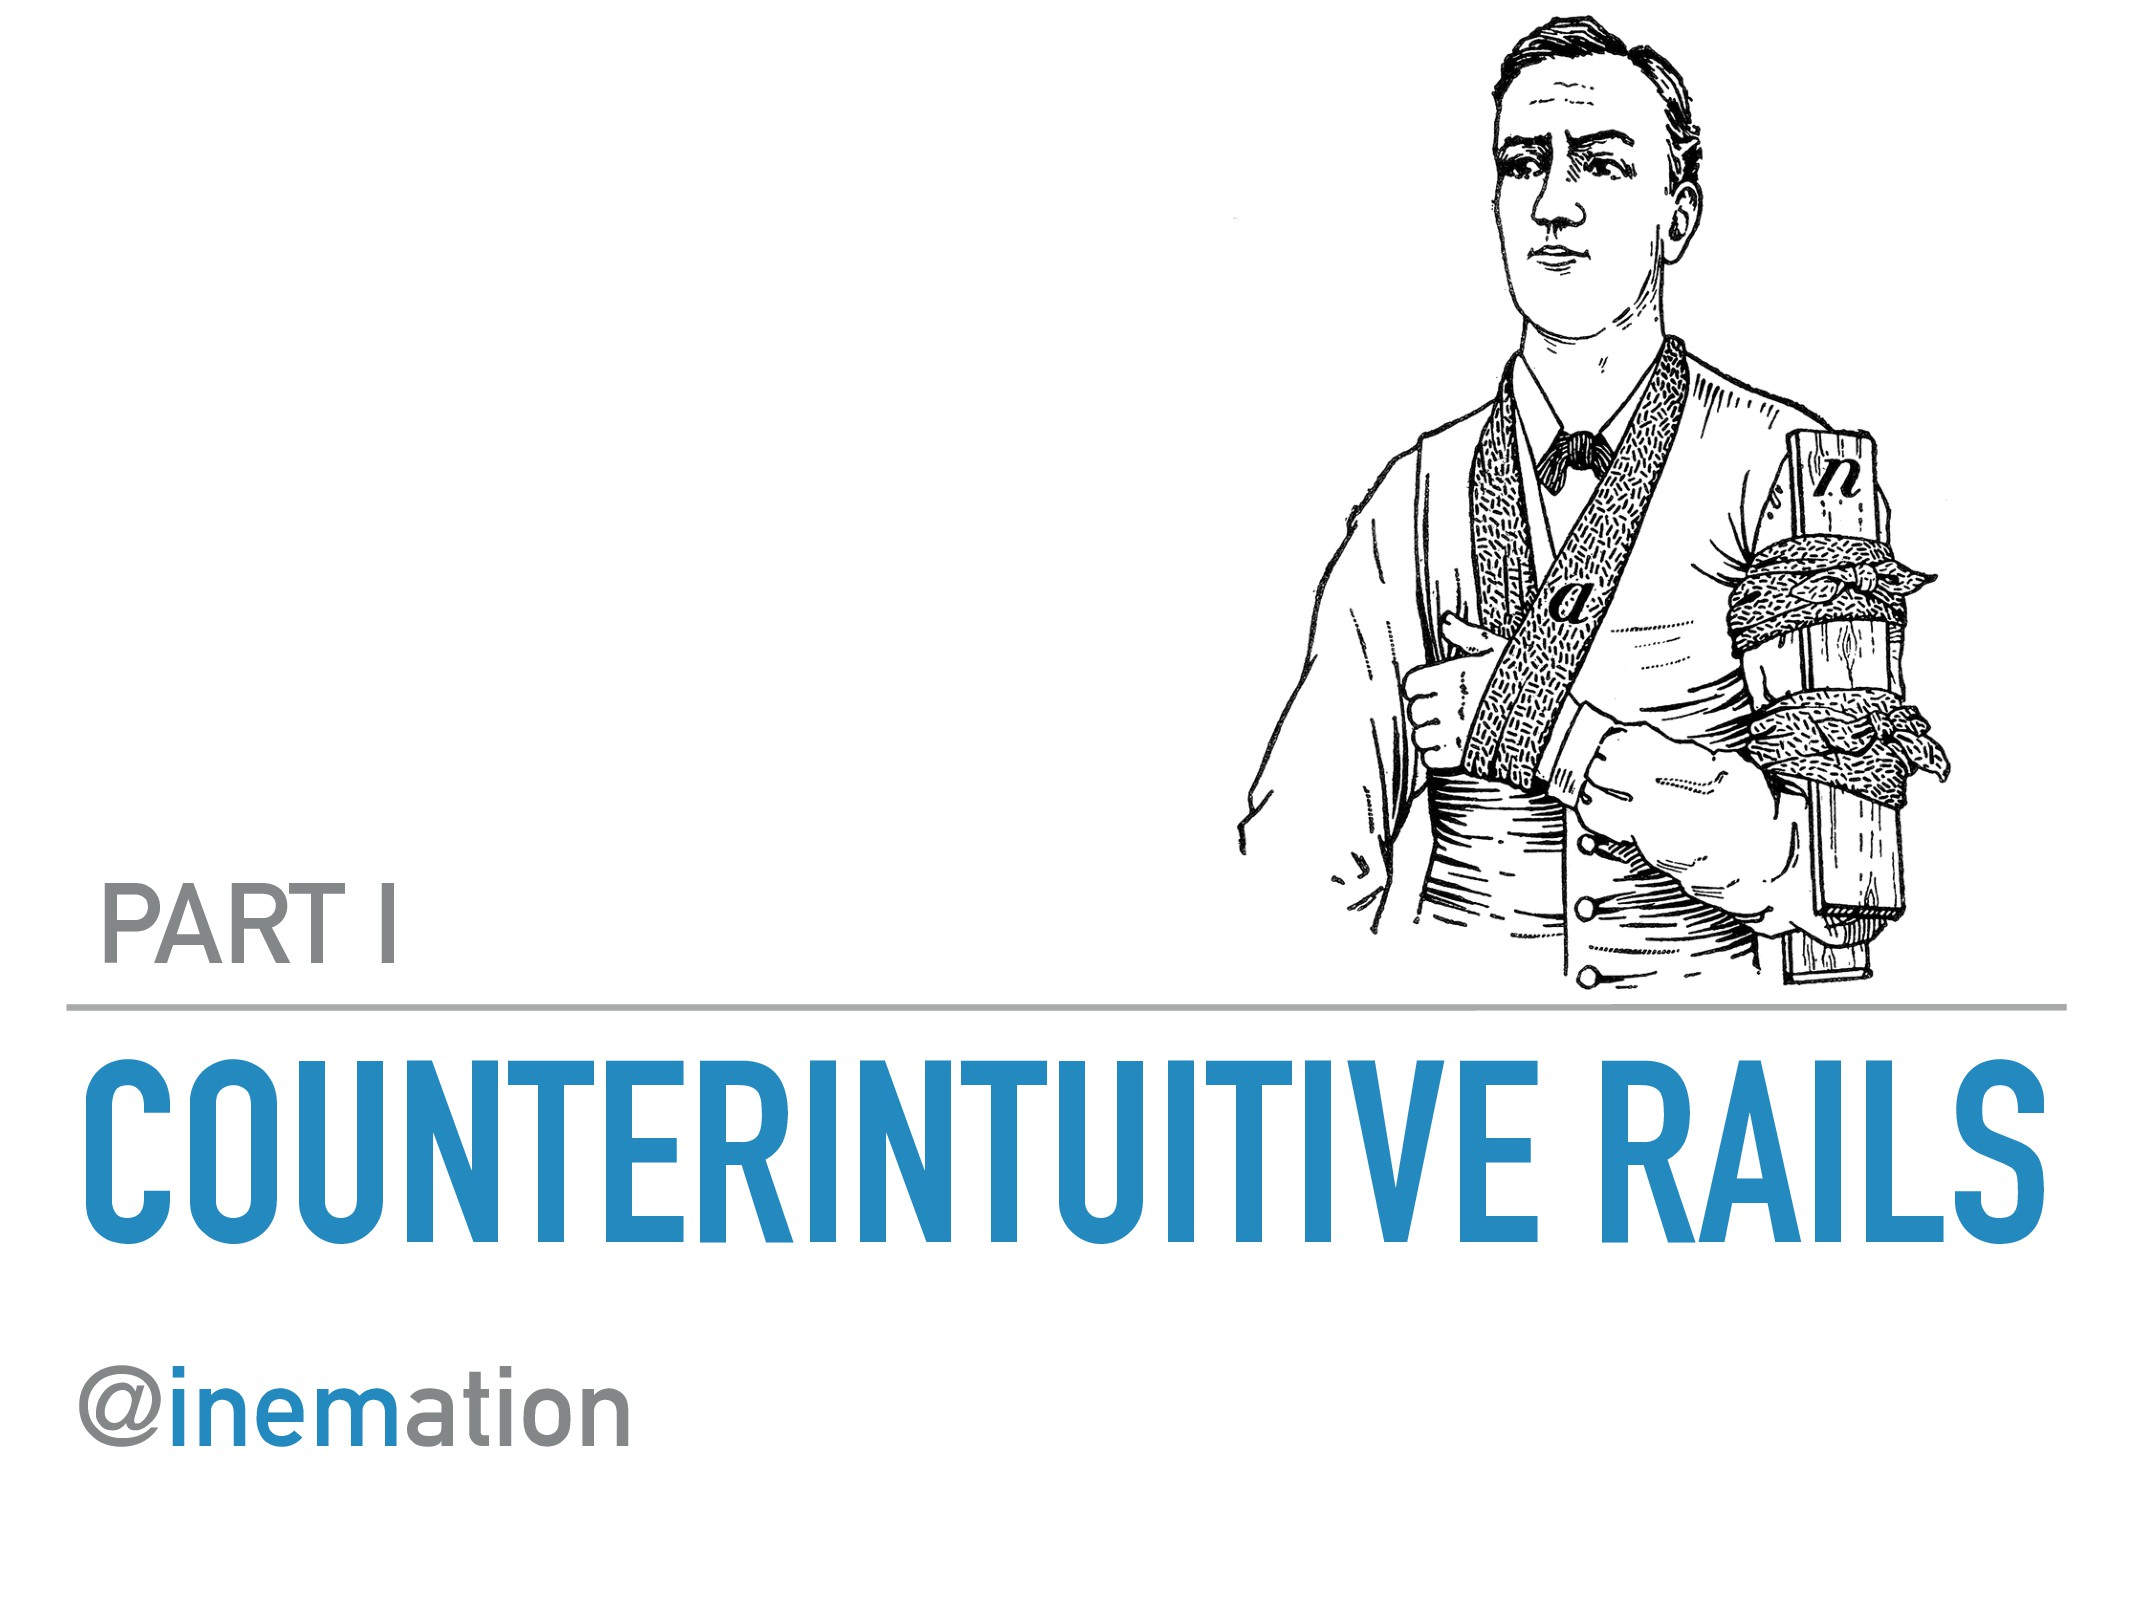 COUNTERINTUITIVE RAILS @inemation PART I